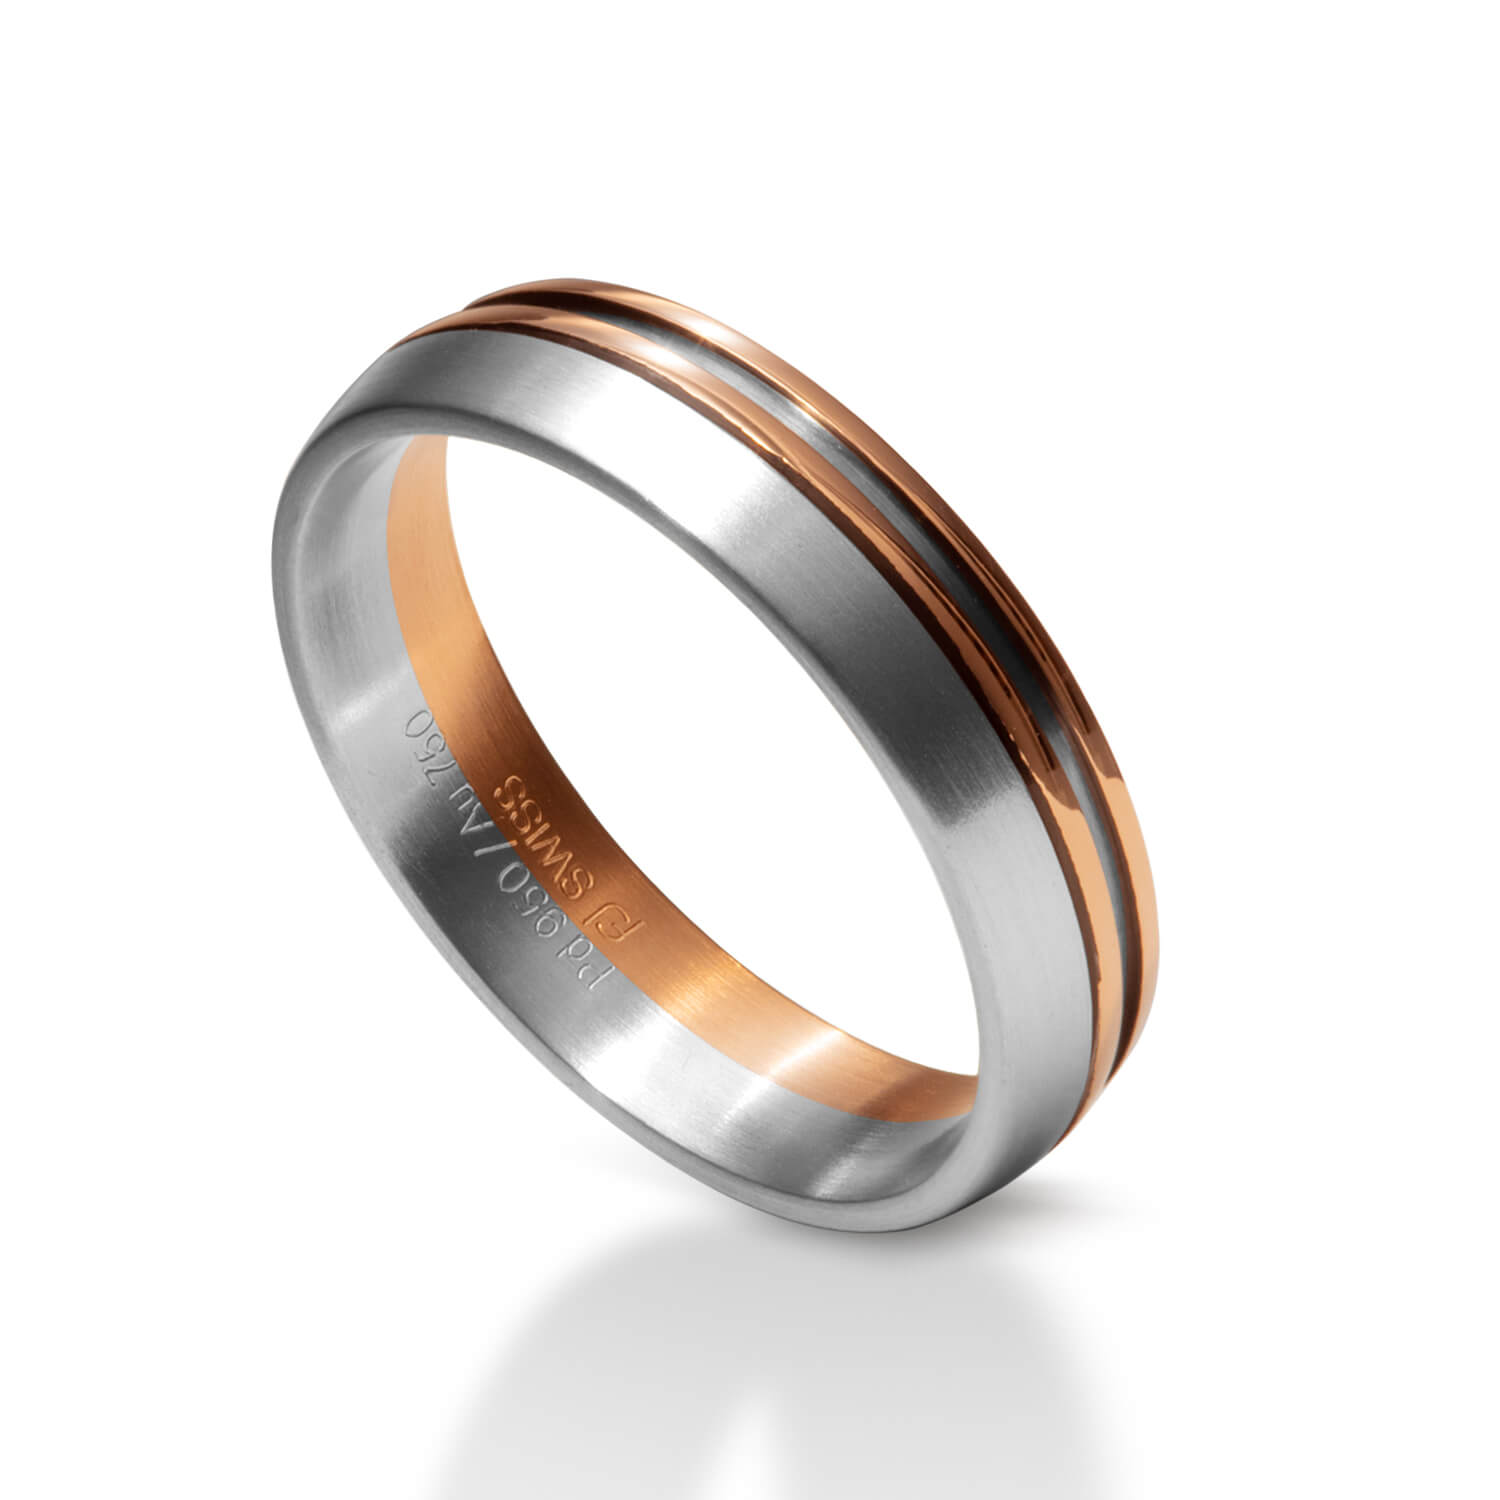 wedding bands, wedding rings, rings, jewellery, jewelry, gold, platinum, carbon, palladium